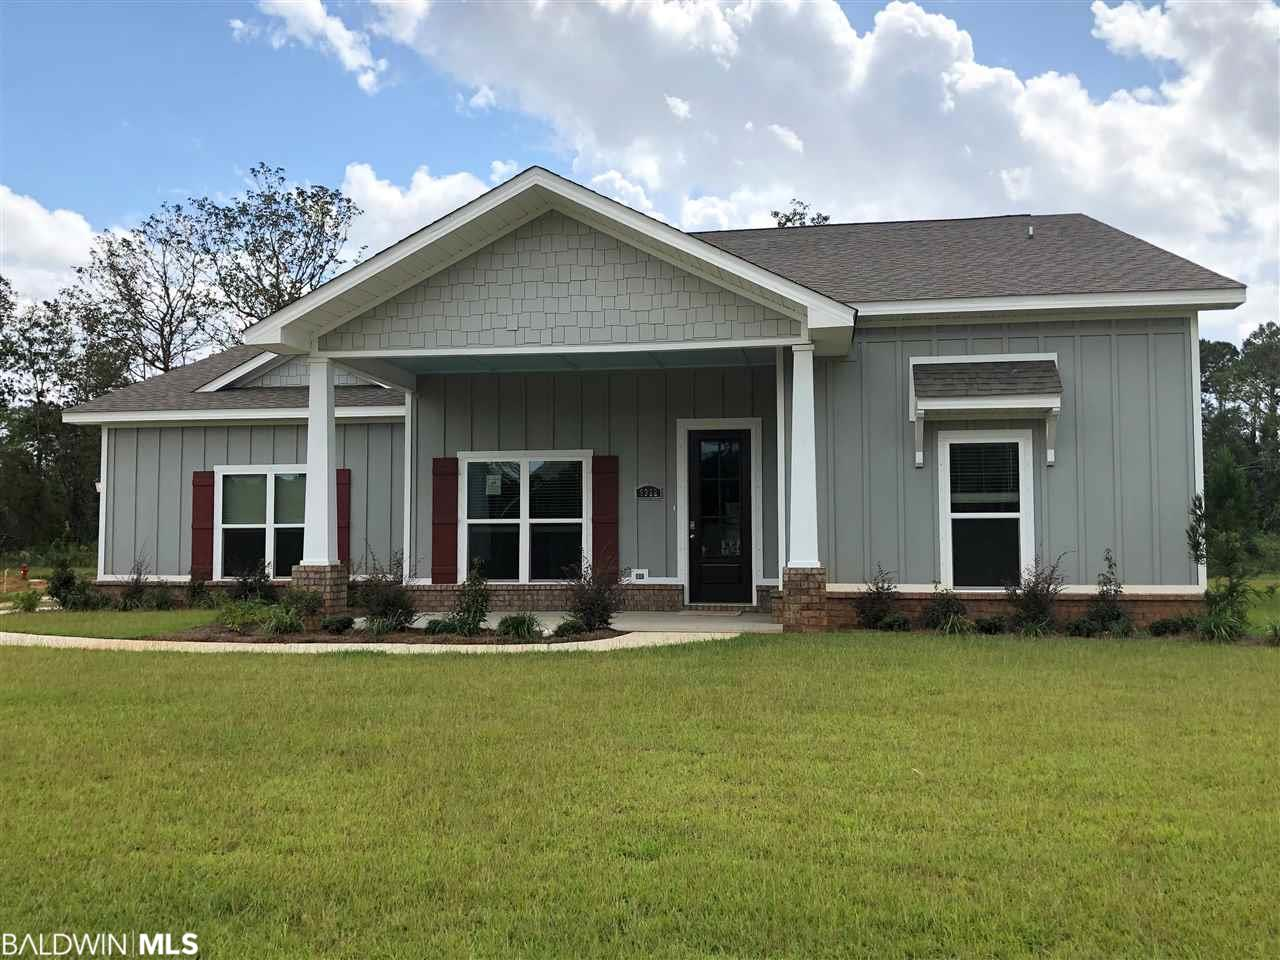 9322 Diamante Blvd, Daphne, AL 36526